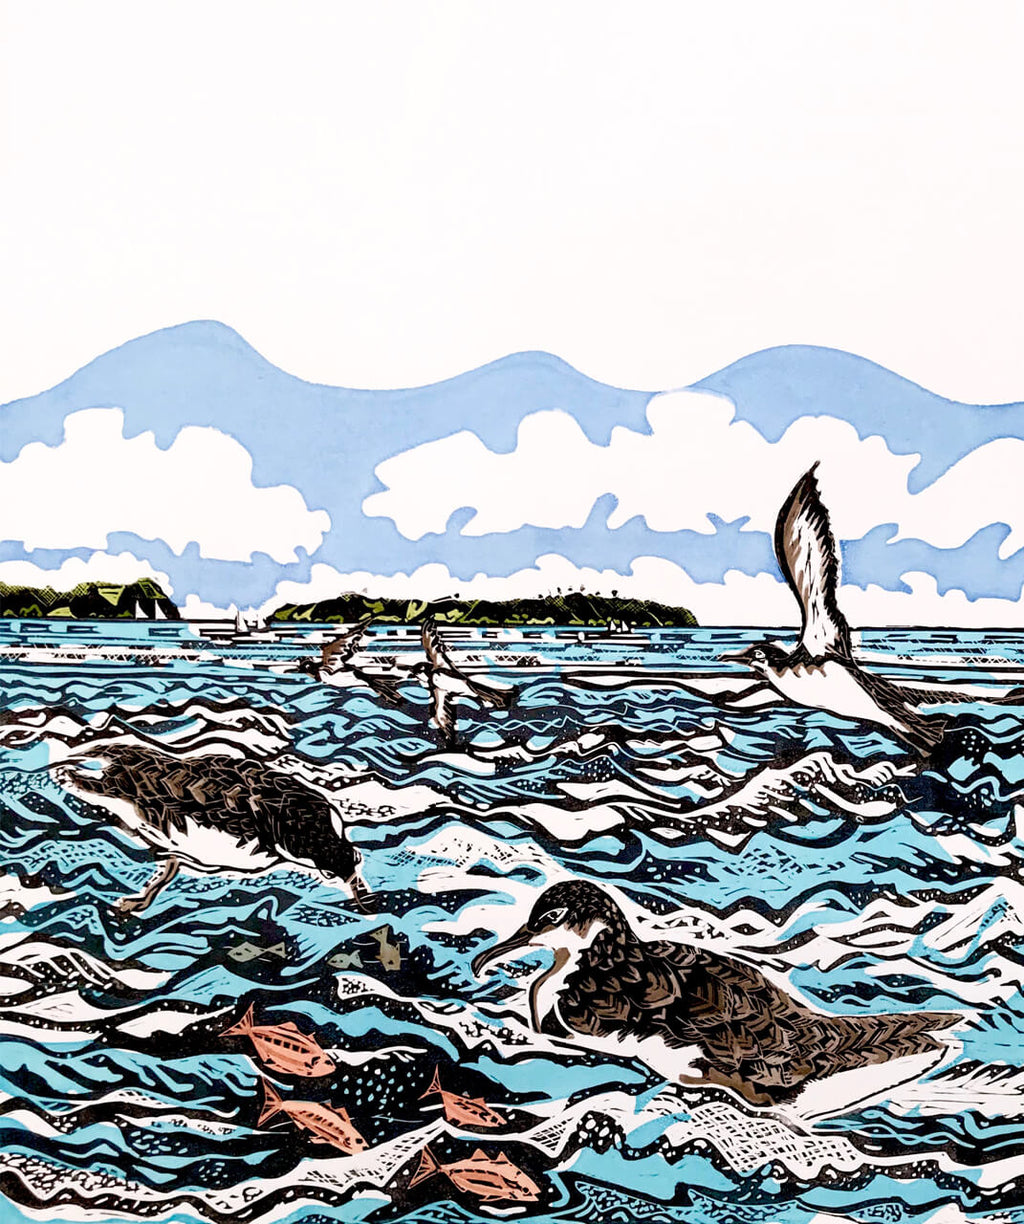 Art by Vivien Davimes - Shearwaters/Pakaha on the Hauraki Gulf 1/12